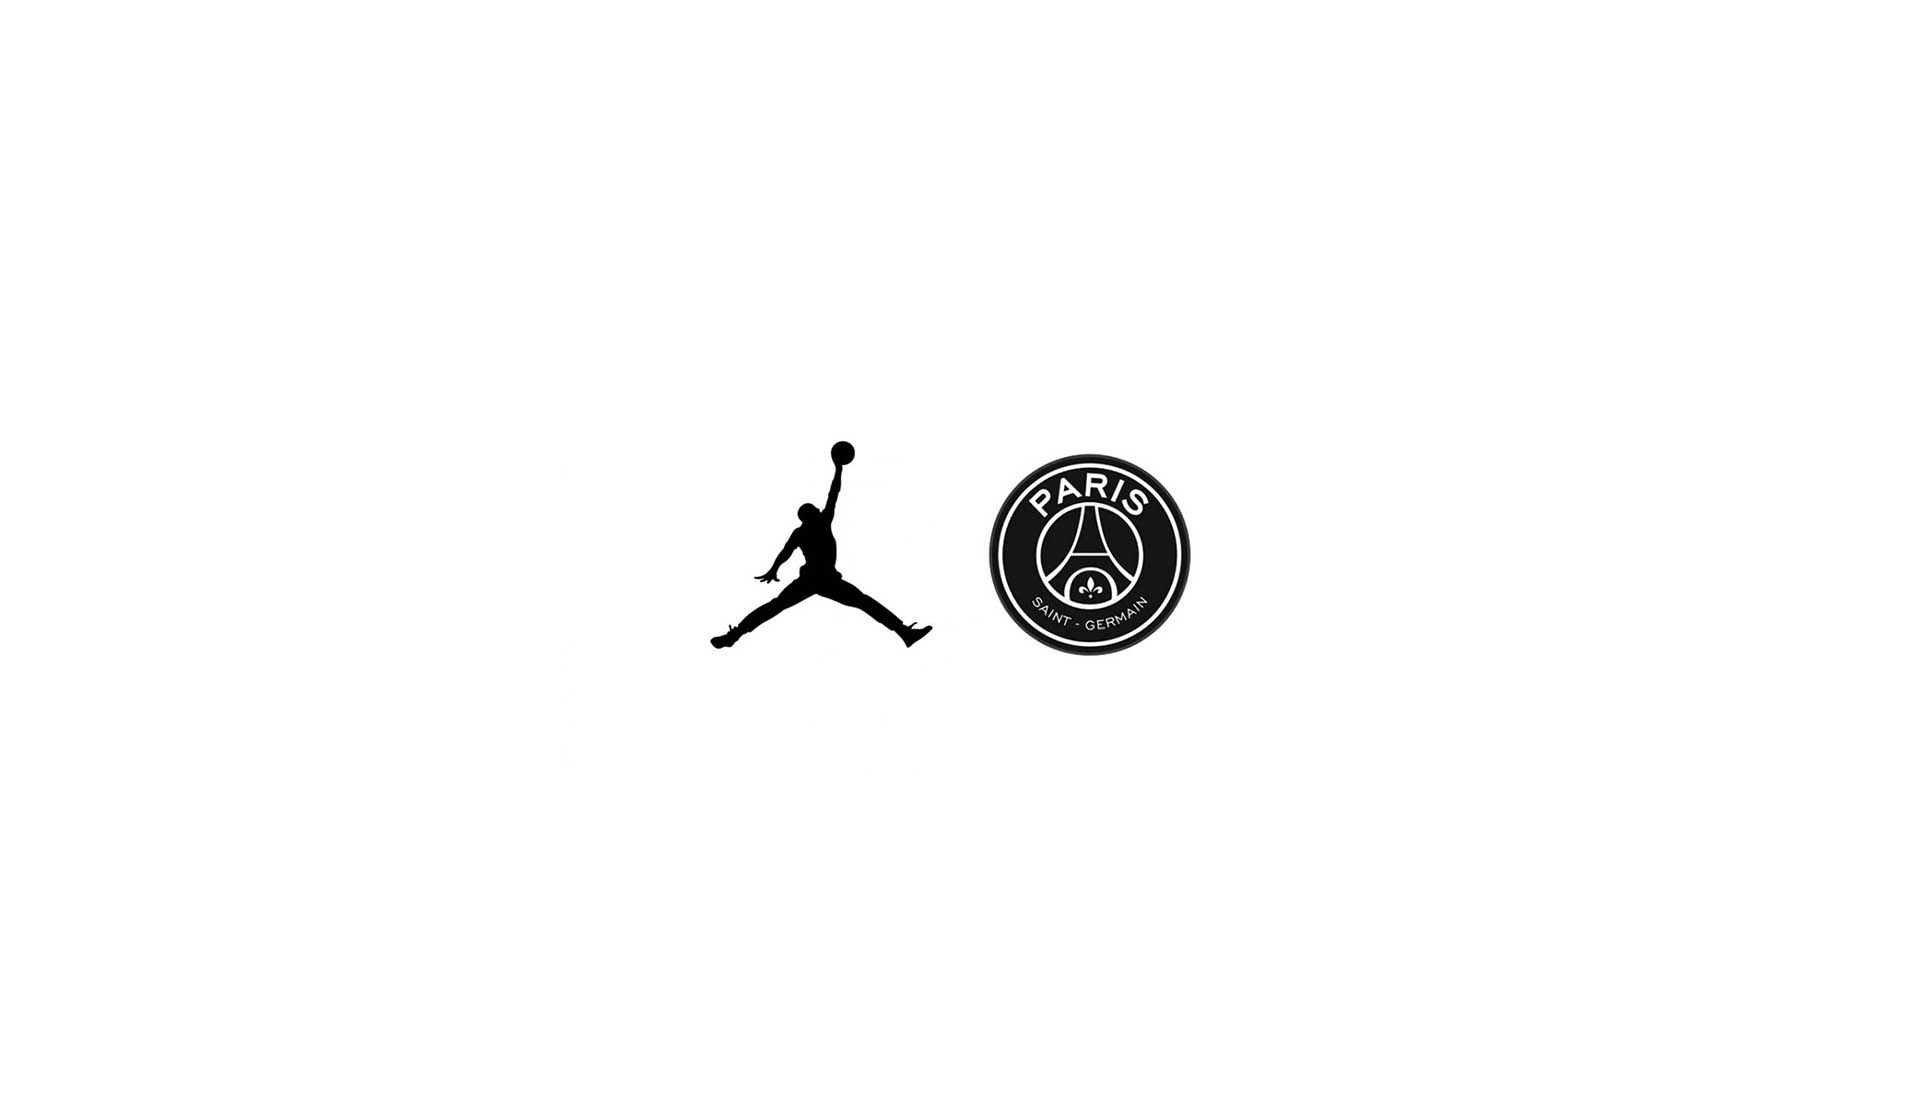 26be4e0f646f76 PSG Rumoured To Wear Jordan Branded Kits - SoccerBible